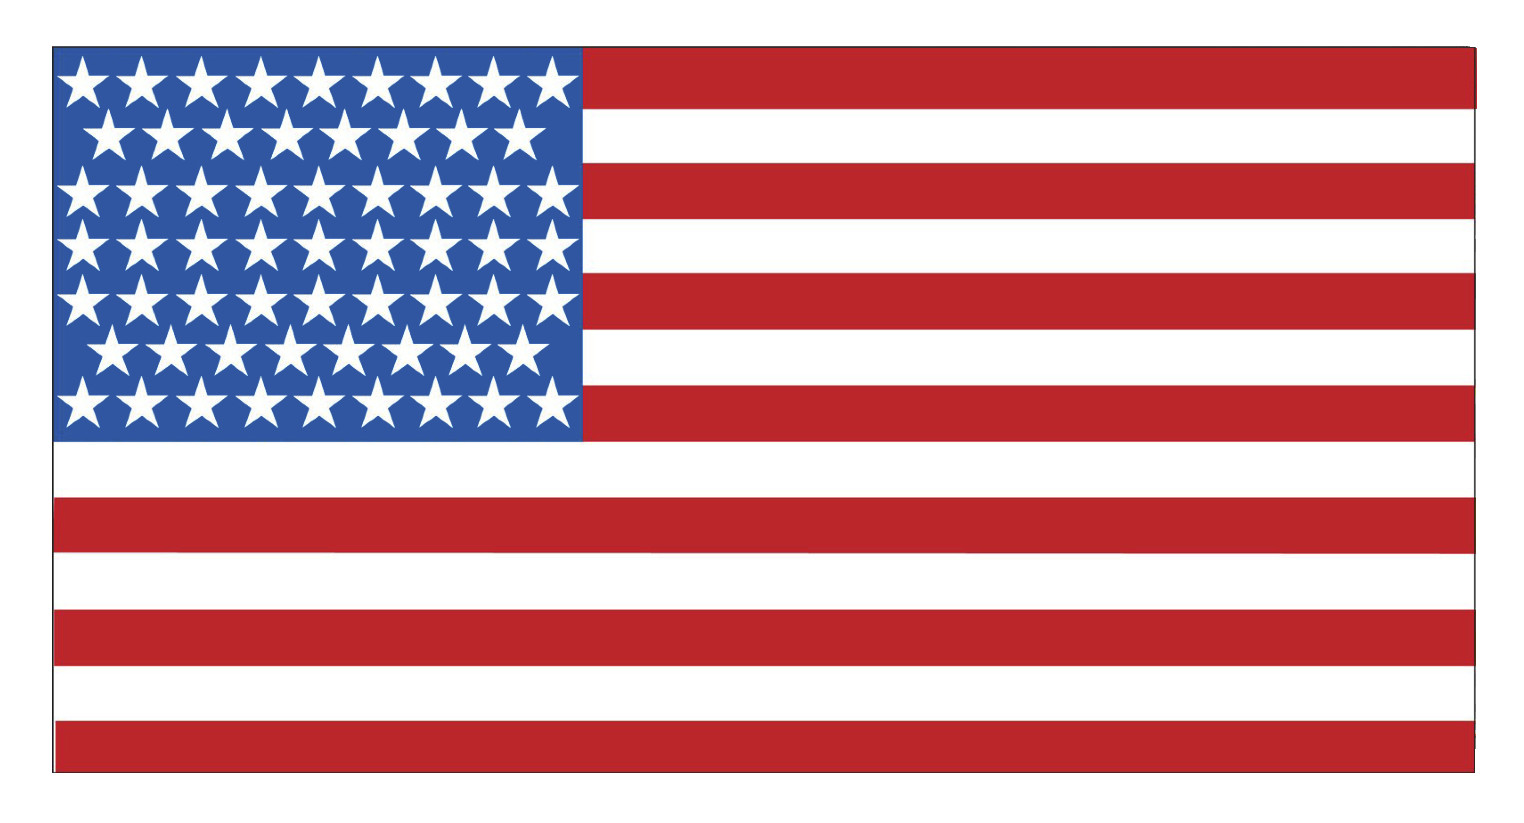 United States Flag Clipart At Getdrawings